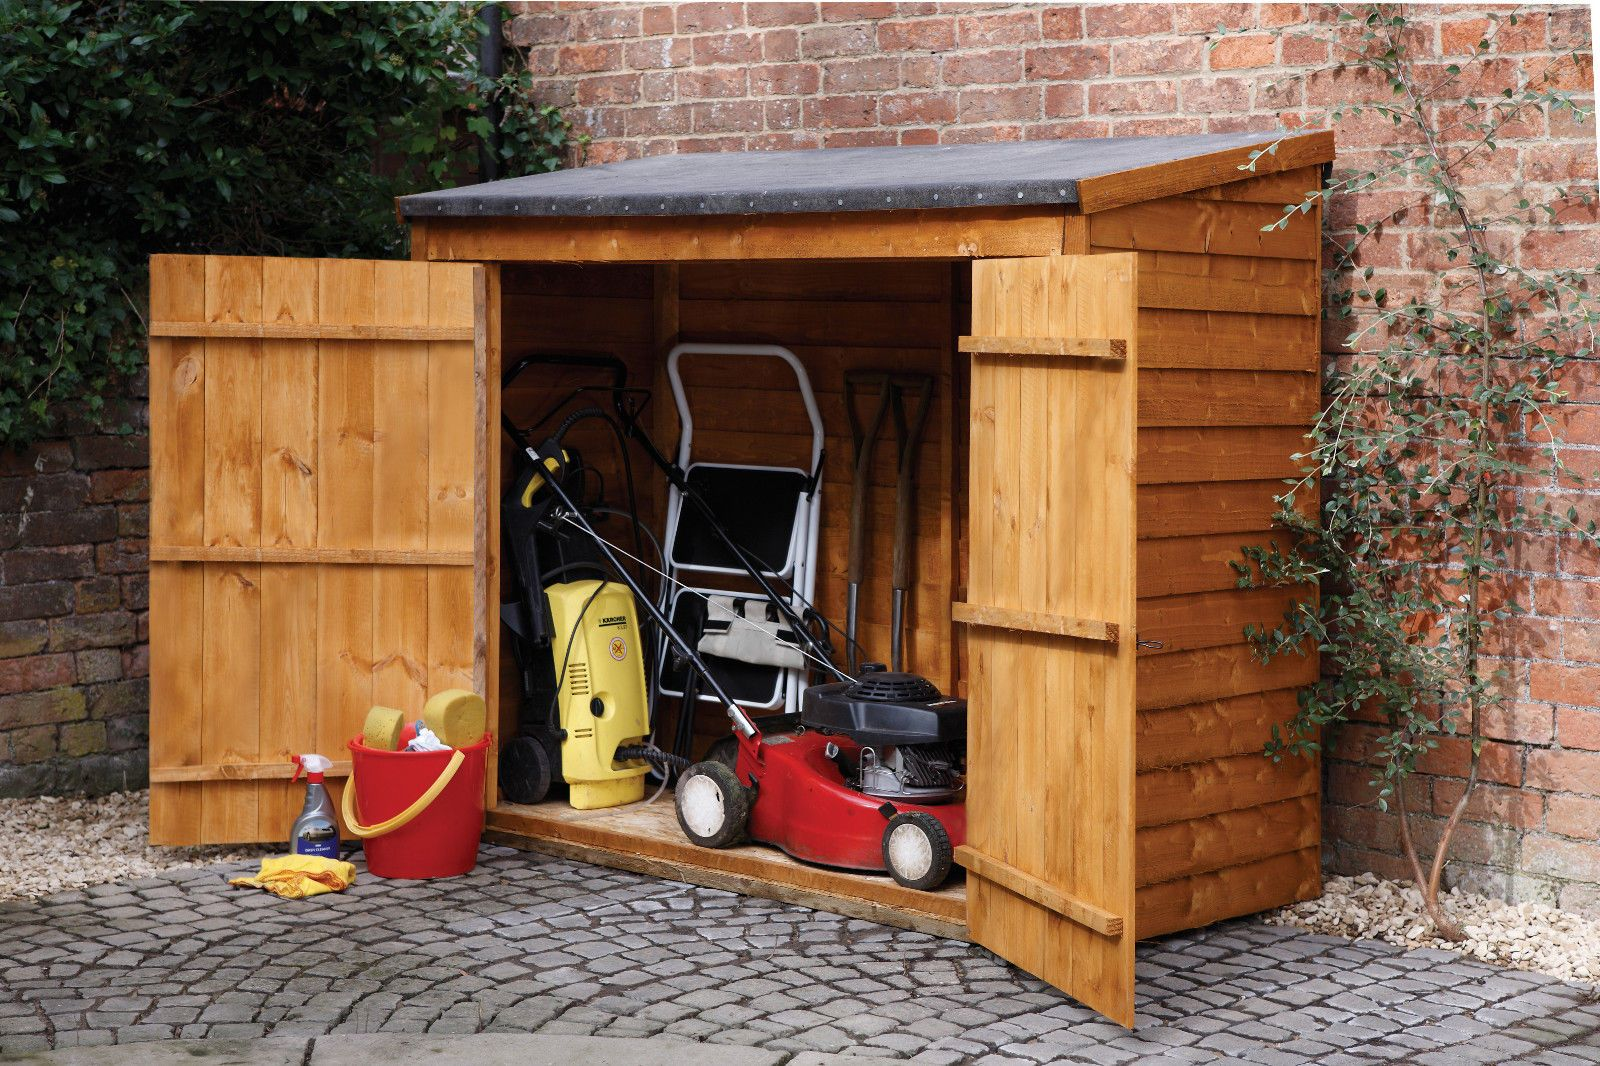 Maxi Wooden Shed Outdoor Storage Unit Utility Tools Box